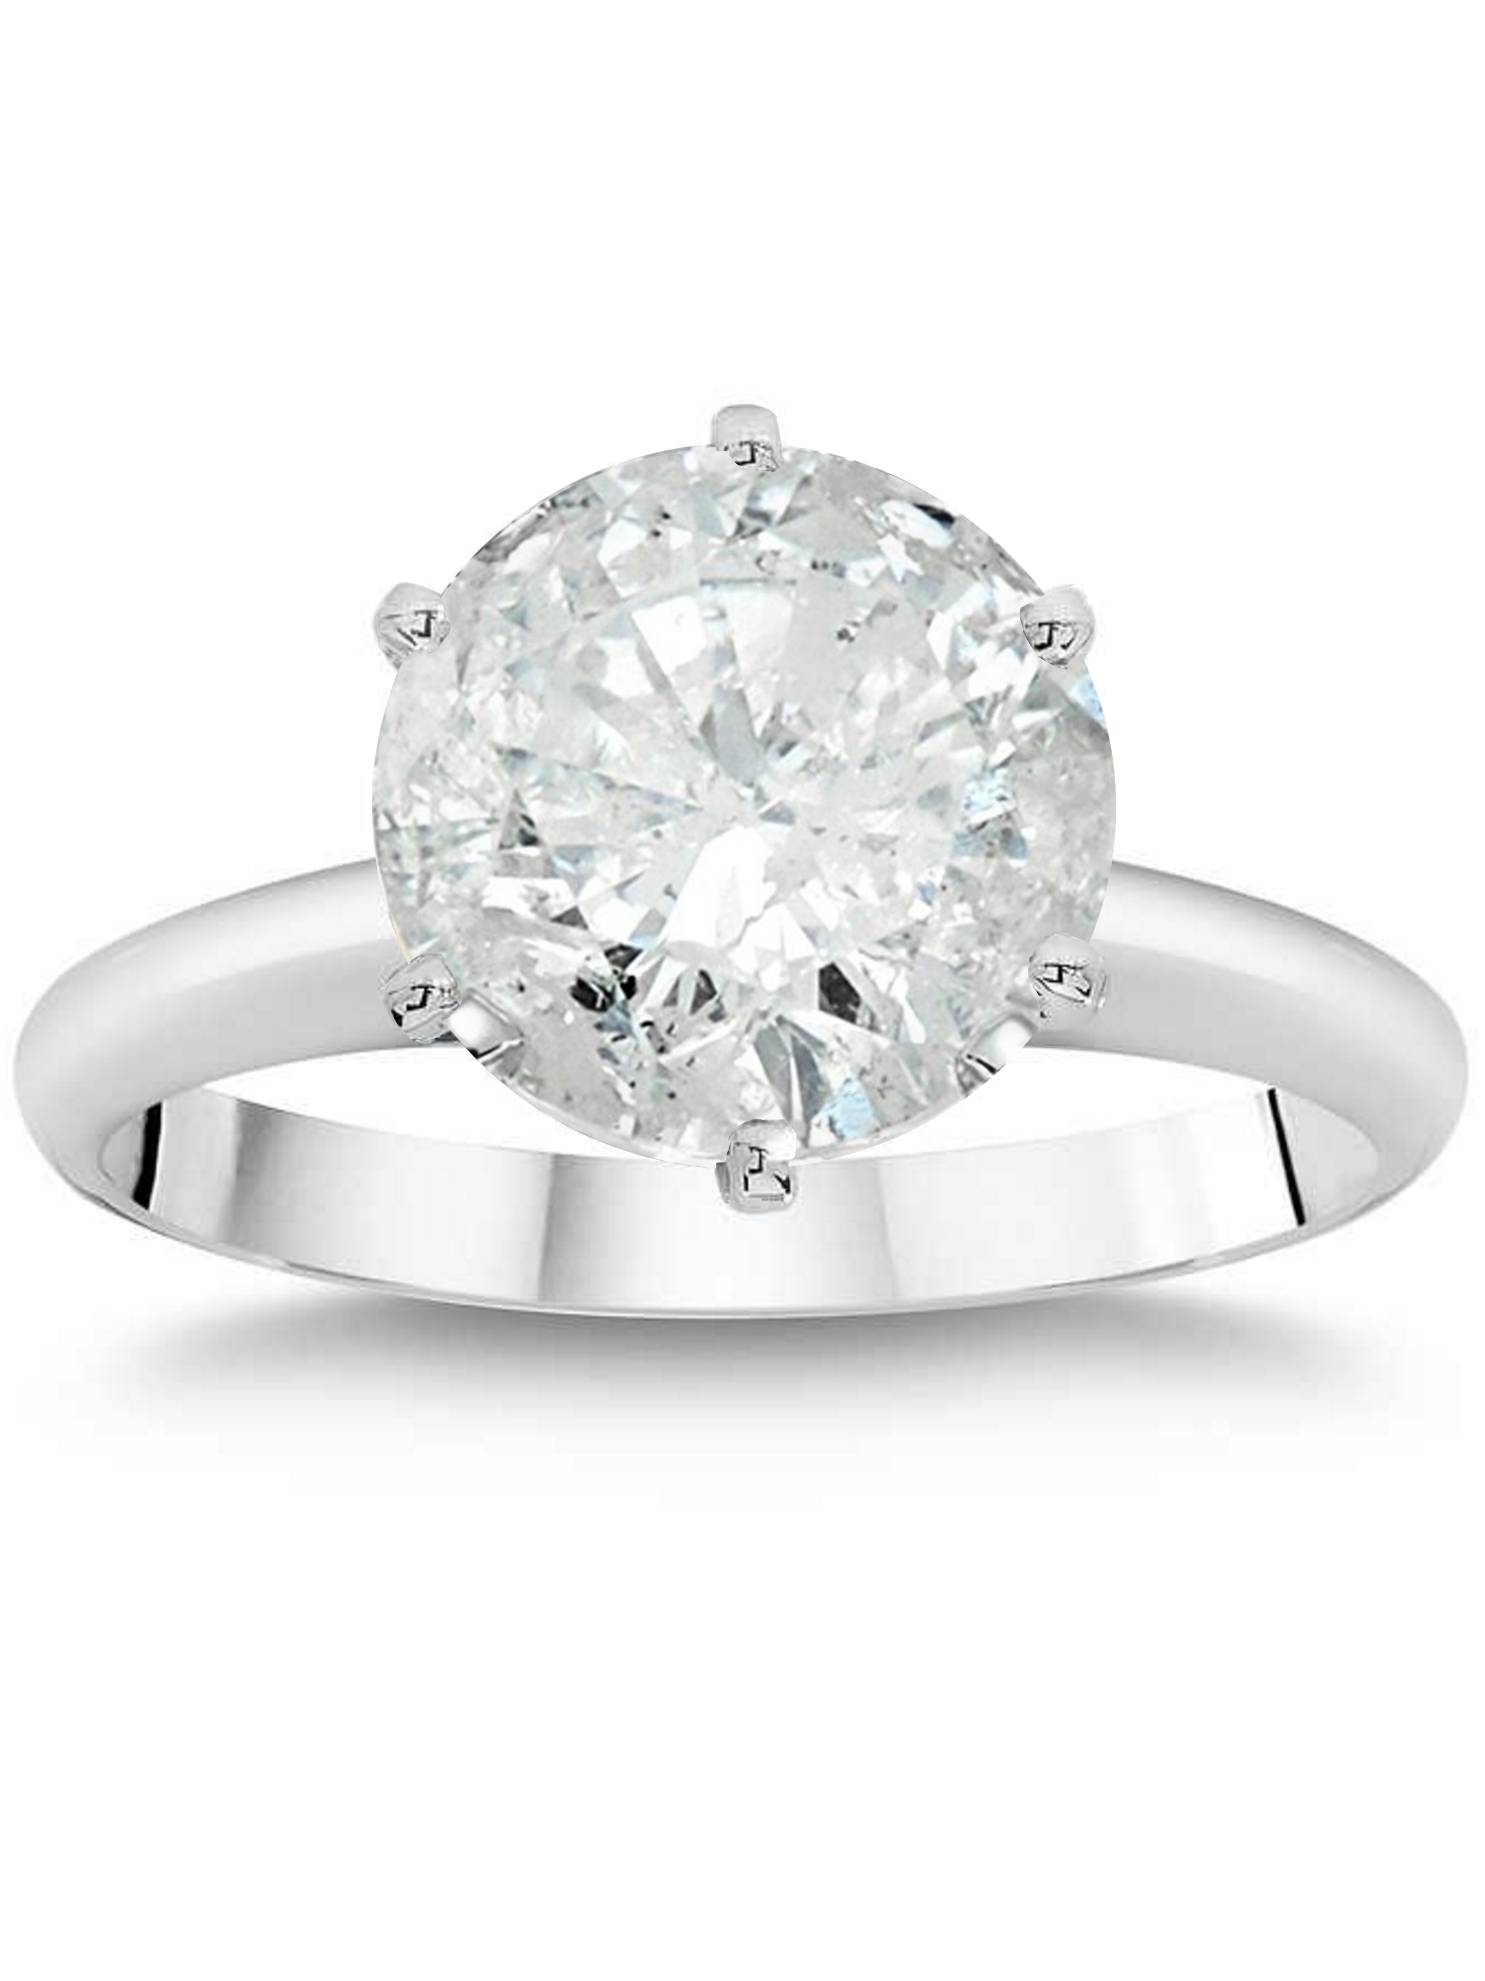 3ct Round Brilliant Diamond Solitaire Engagement Ring 14K White Gold Enhanced by Pompeii3